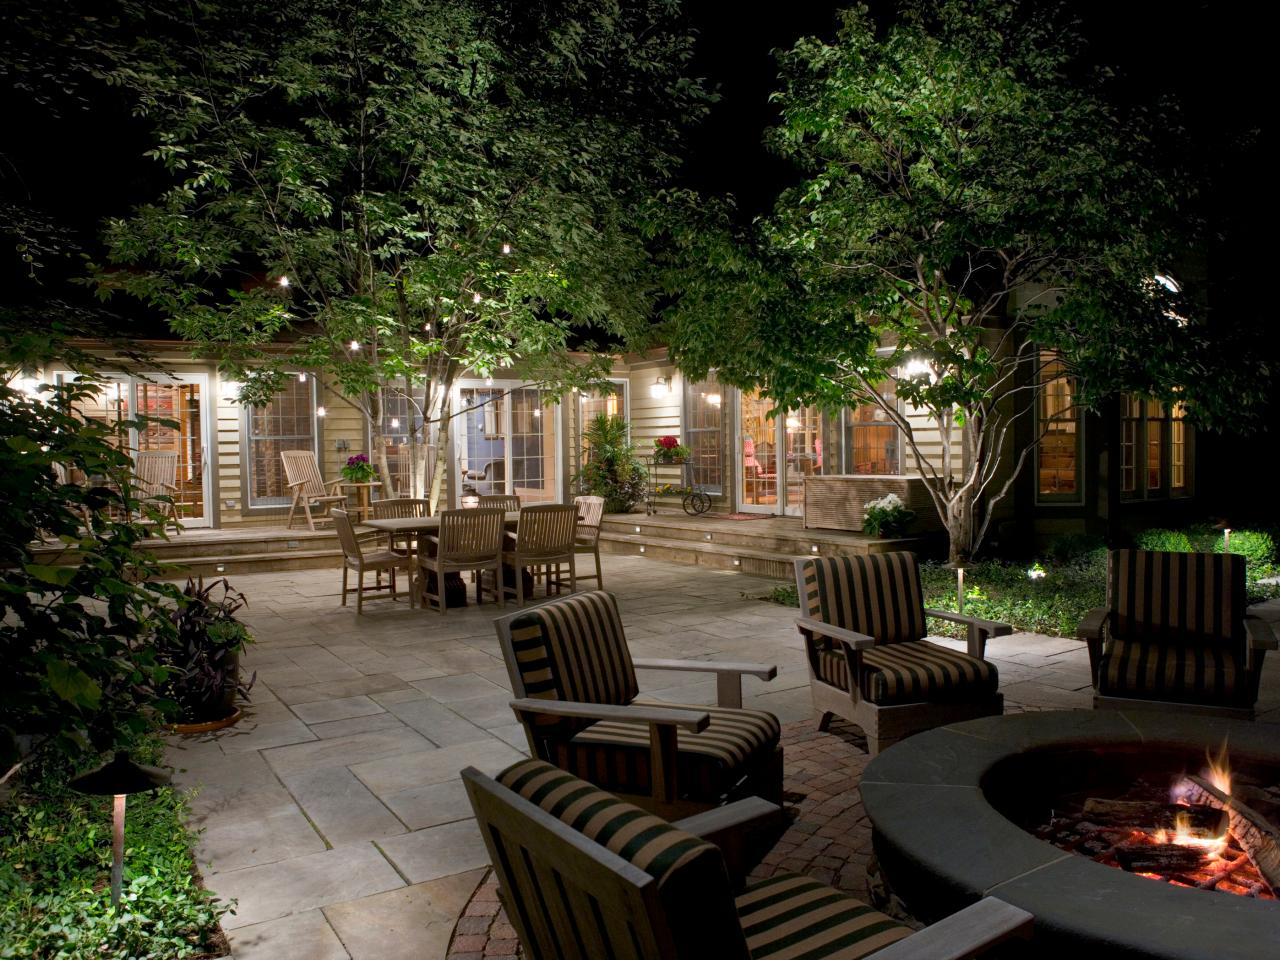 Ordinary Outdoor Landscape Lighting Ideas Part - 1: How To Illuminate Your Yard With Landscape Lighting